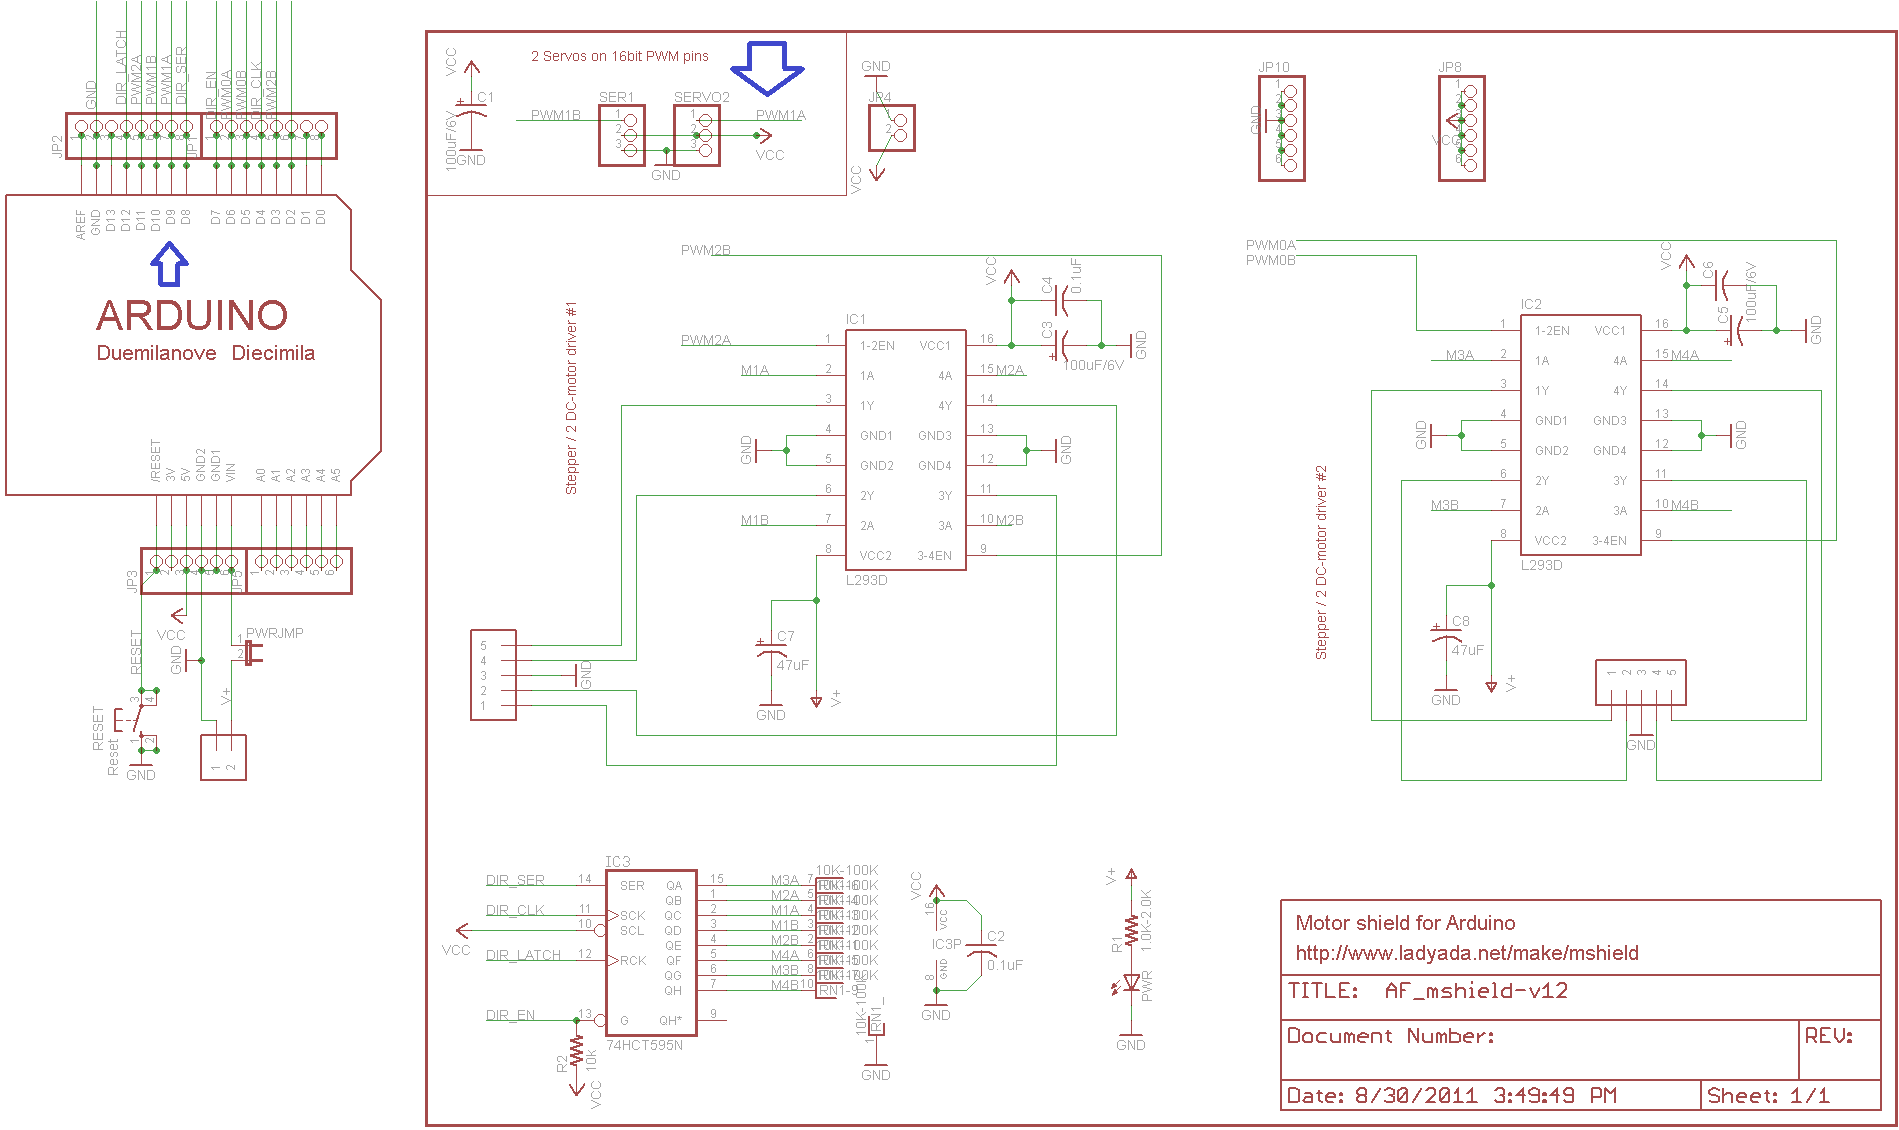 Sks7g2 Pwm Reference Project Synergy Forum Renesas Servo Motor Test Circuit Here Is Shield Diagram And Sks7 Arduino Mapping In S7g2